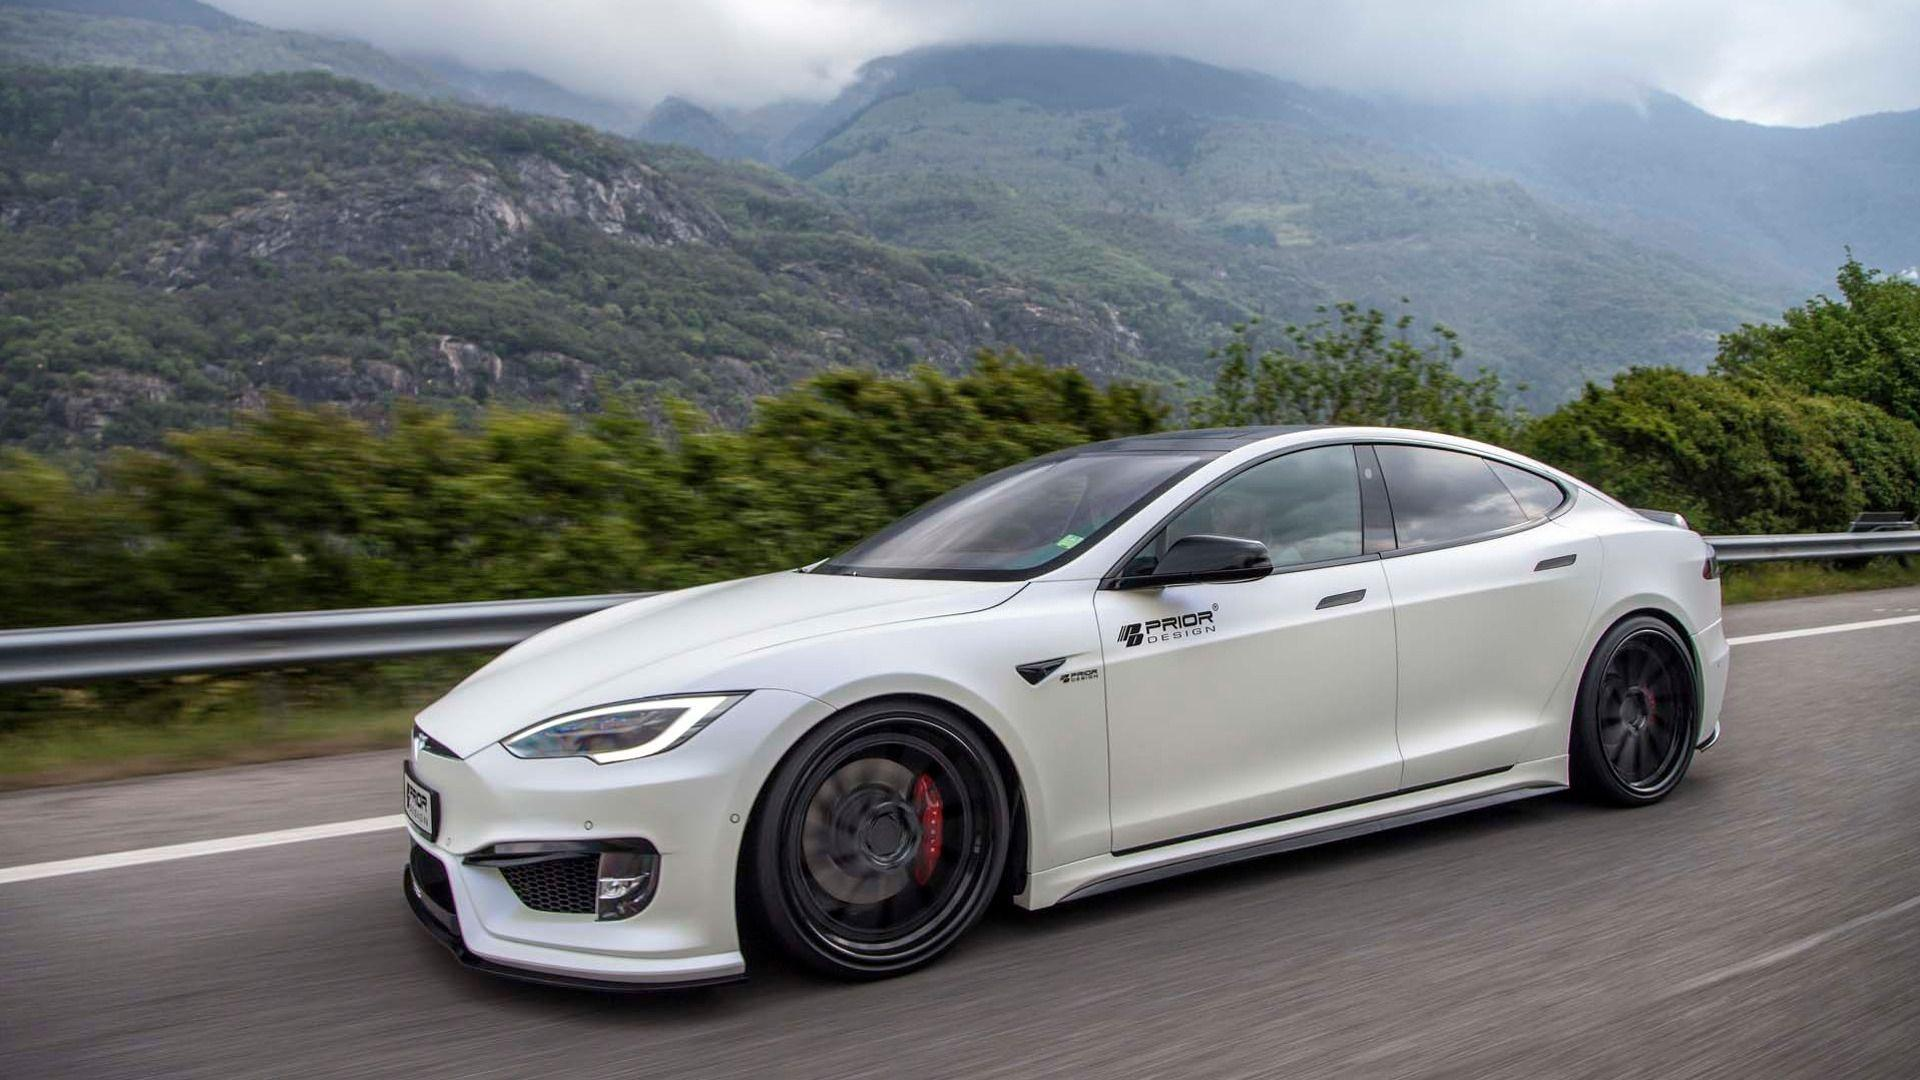 Tesla Model S Gets Aggressive Touch With Tuner's Aero Kit